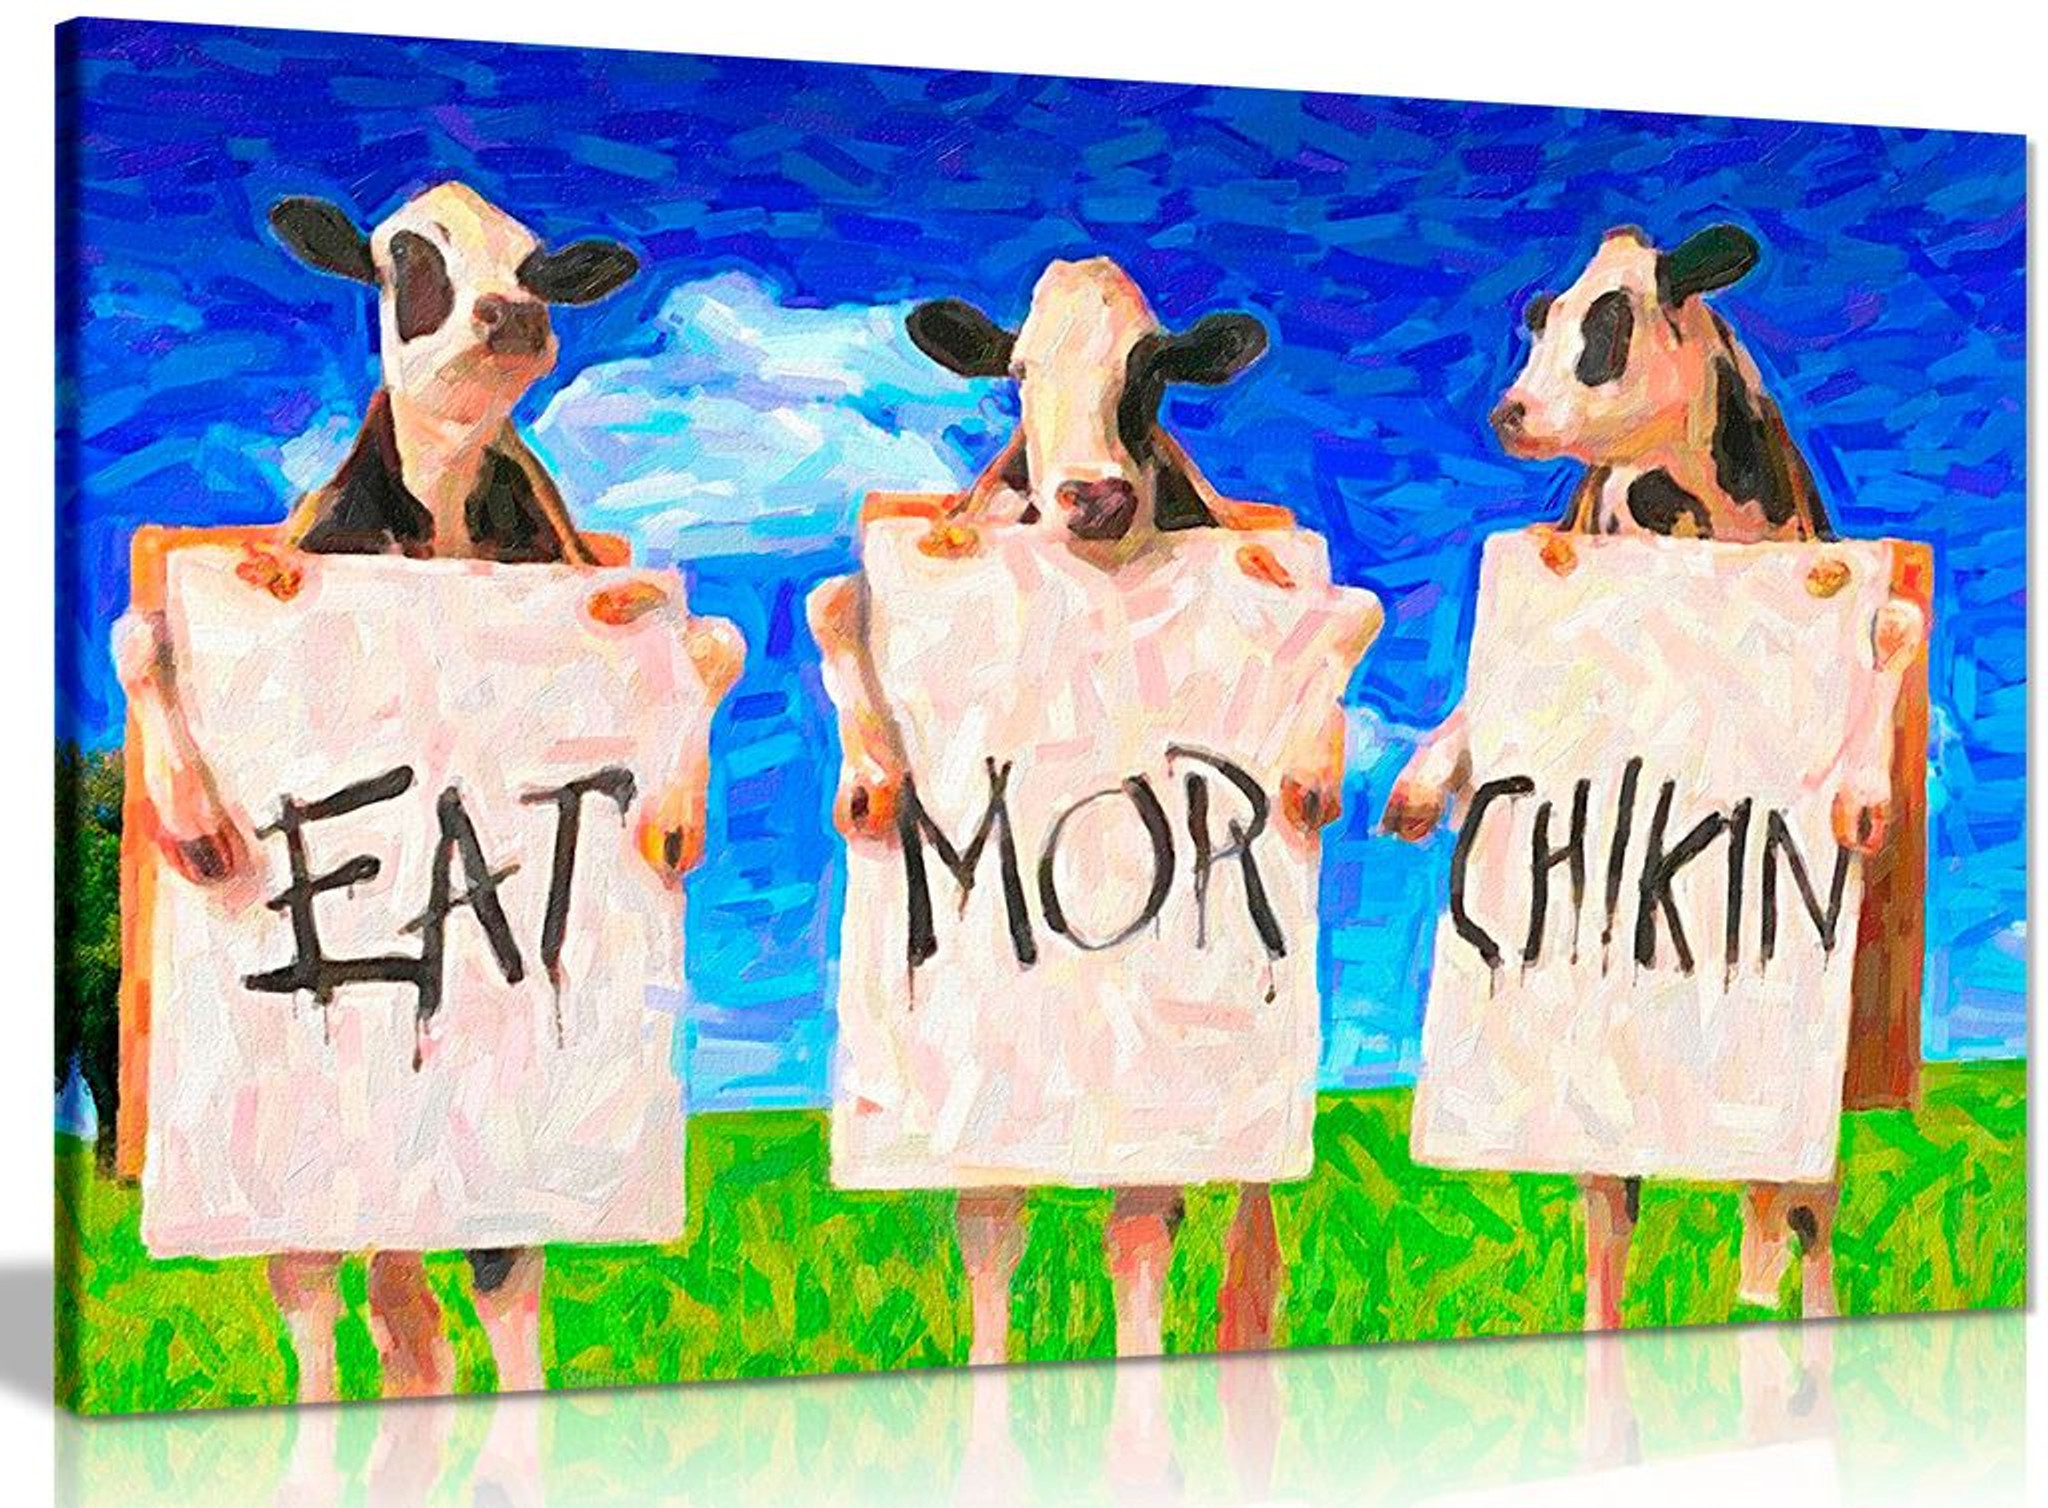 Cows Eat More Chicken Oil Painting Reproduction Canvas